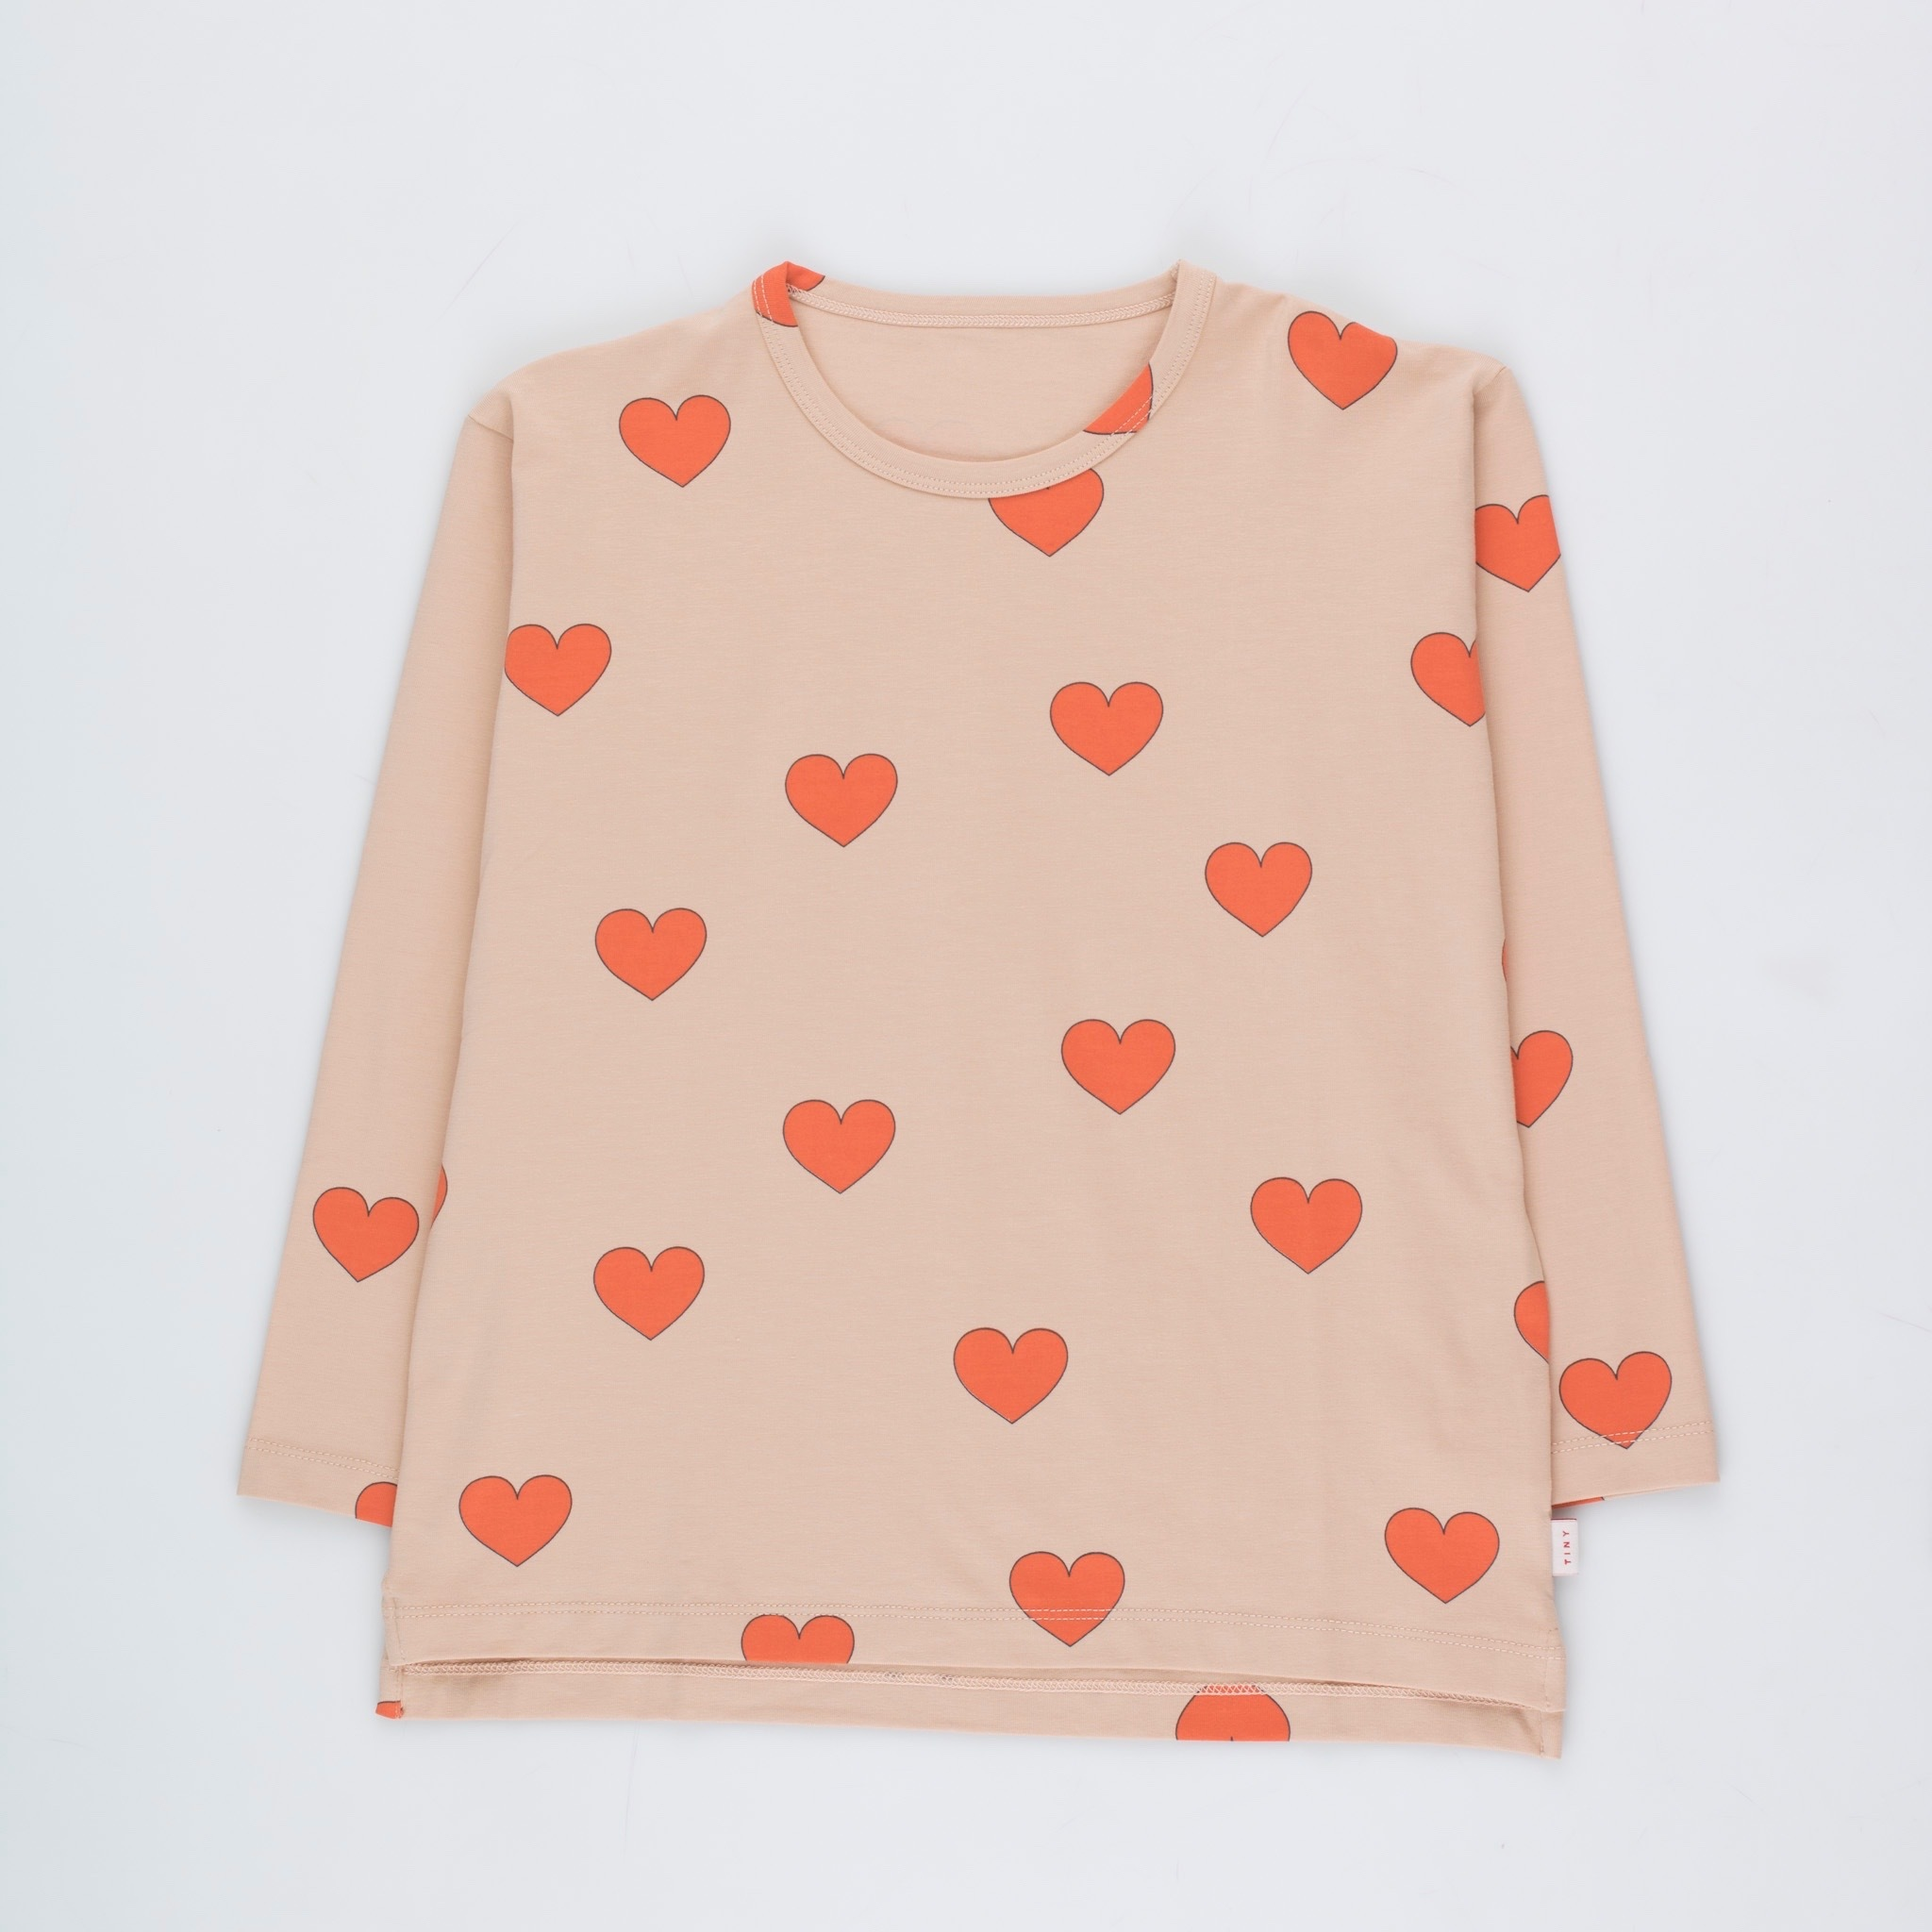 《TINYCOTTONS 2020AW》HEARTS TEE / light nude × red